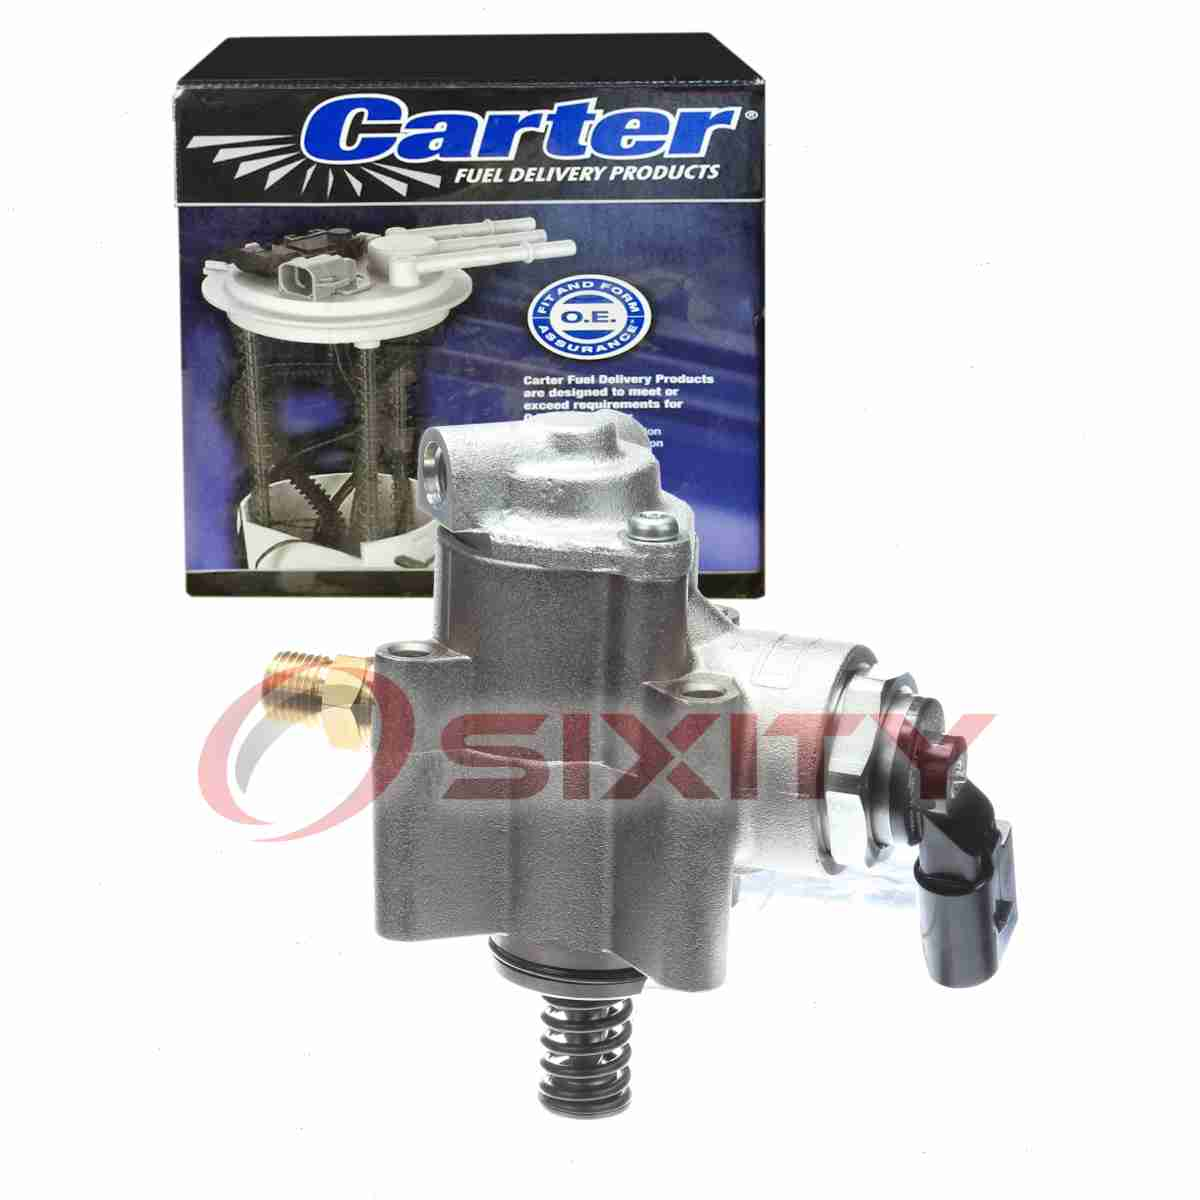 Details about Carter High Pressure Fuel Pump for 2005-2009 Audi A4 Quattro  2 0L L4 - er